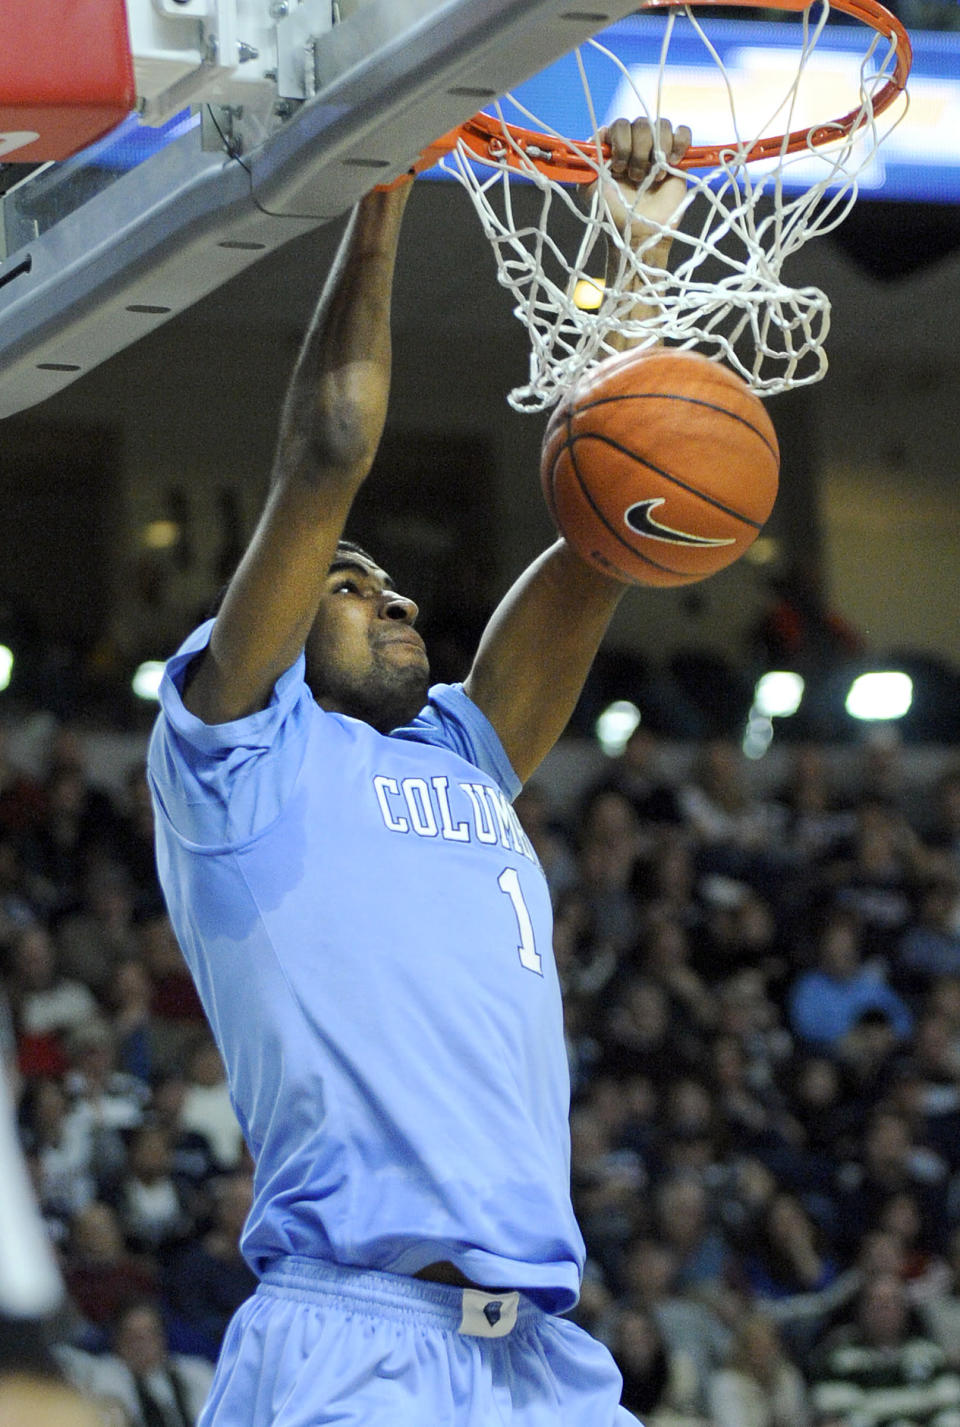 Columbia's Jeff Coby (1) scores during the first half of an NCAA college basketball game against Connecticut in Bridgeport, Conn., Monday, Dec. 22, 2014. (AP Photo/Fred Beckham)